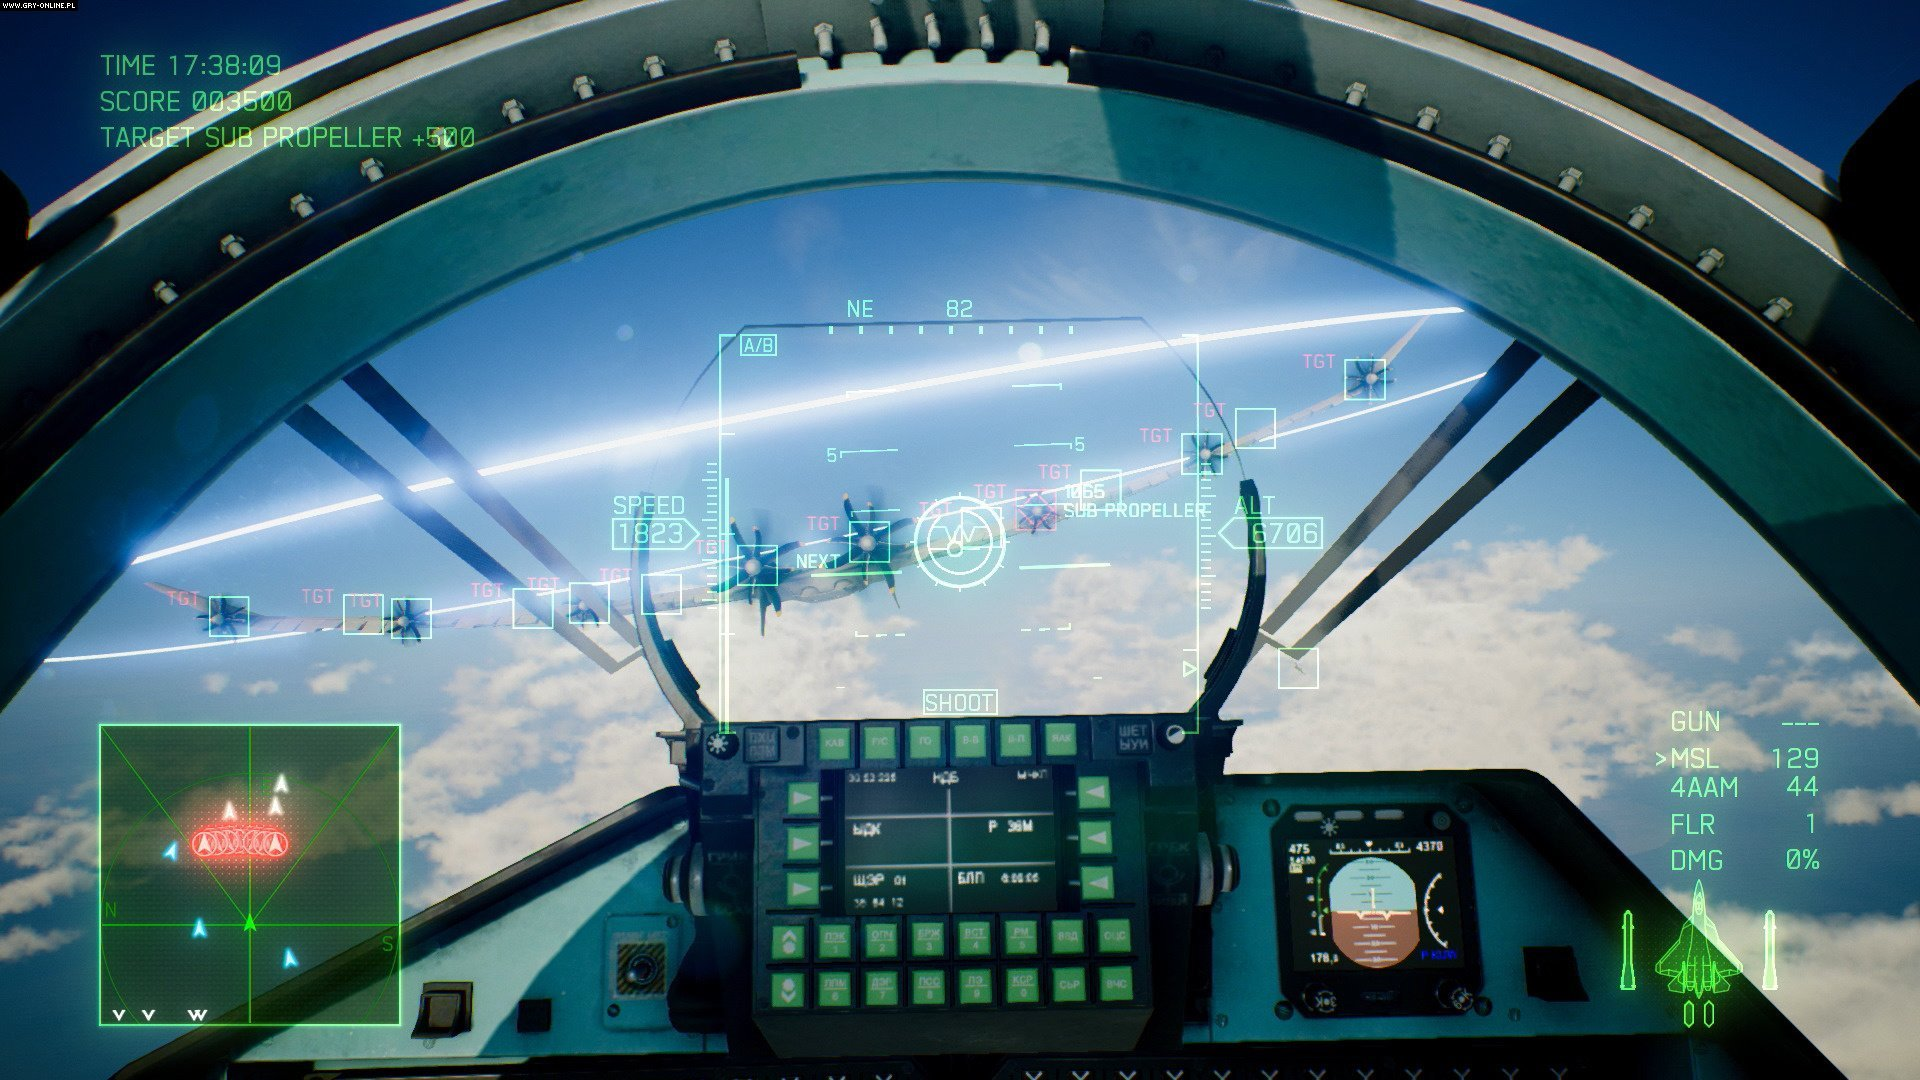 Ace Combat 7: Skies Unknown PC, PS4, XONE Games Image 164/294, Project Aces, Bandai Namco Entertainment